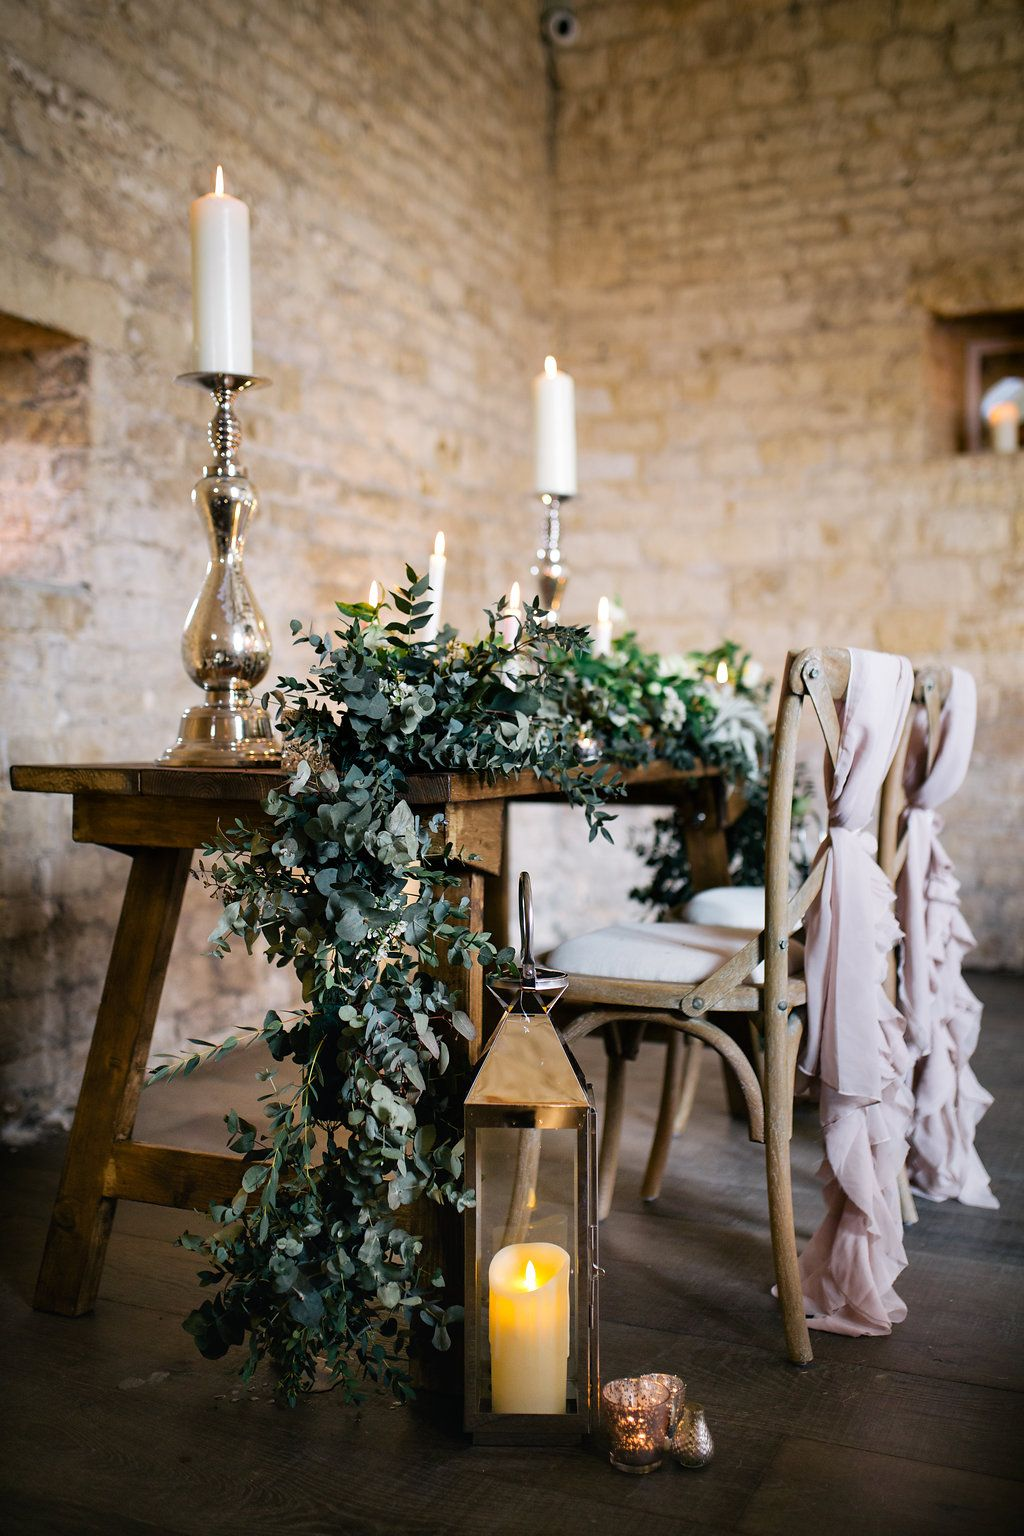 Lapstone Barn Wedding Ideas Cotswolds with Romantic & Whimsical Style